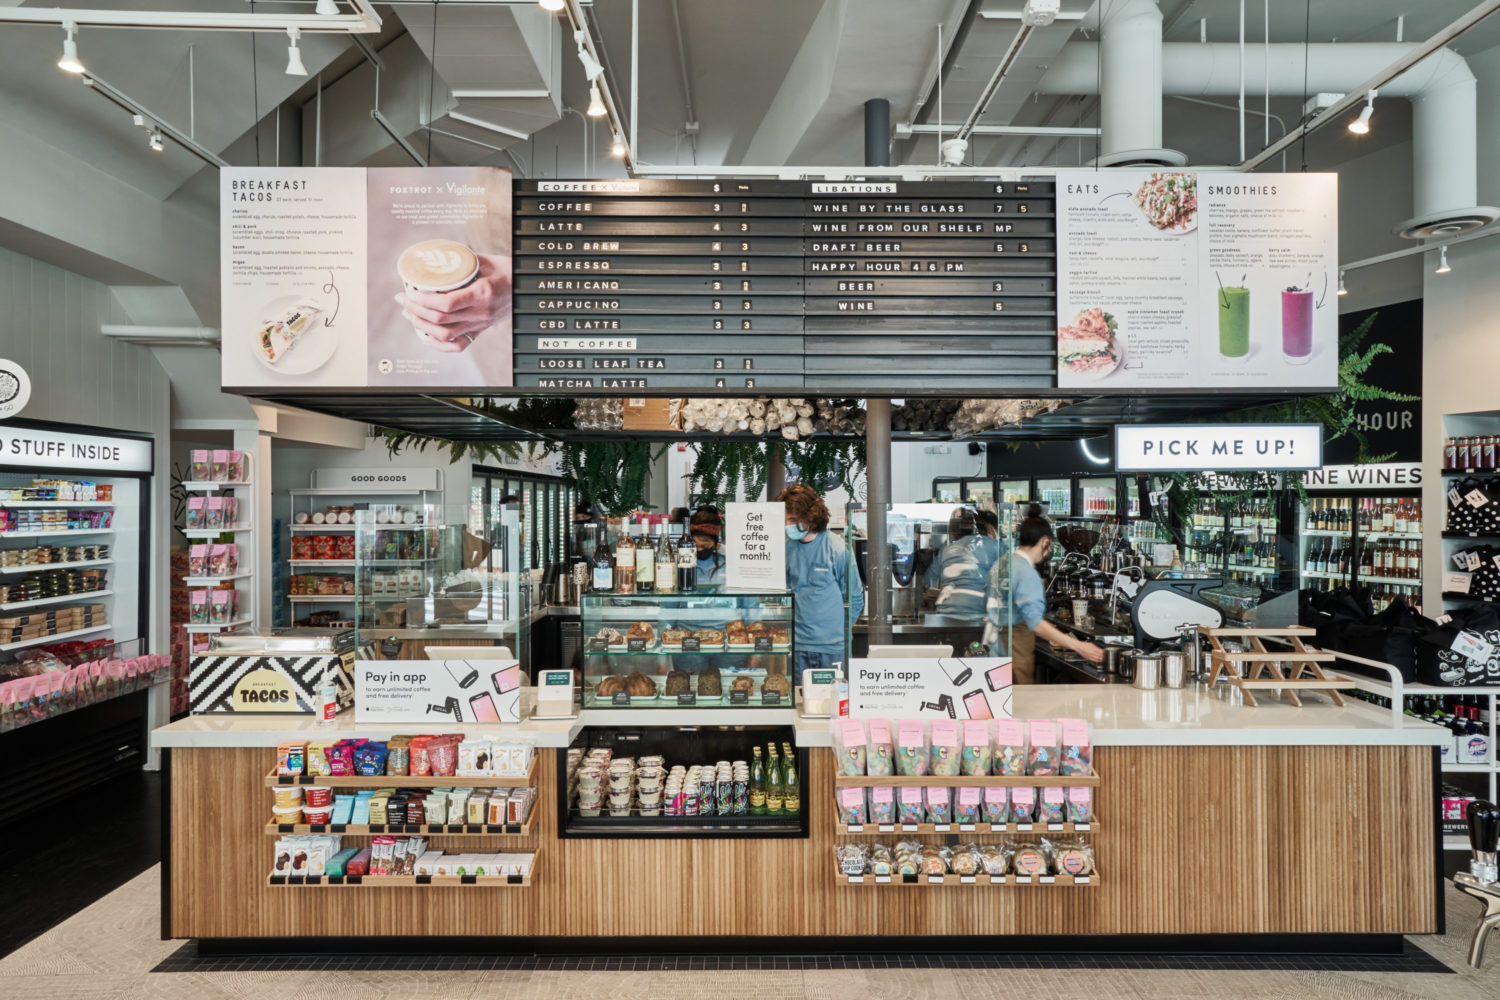 Georgetown's grab-and-go store Foxtrot is offering free Jeni's on Saturday. Photograph by Scott Suchman.